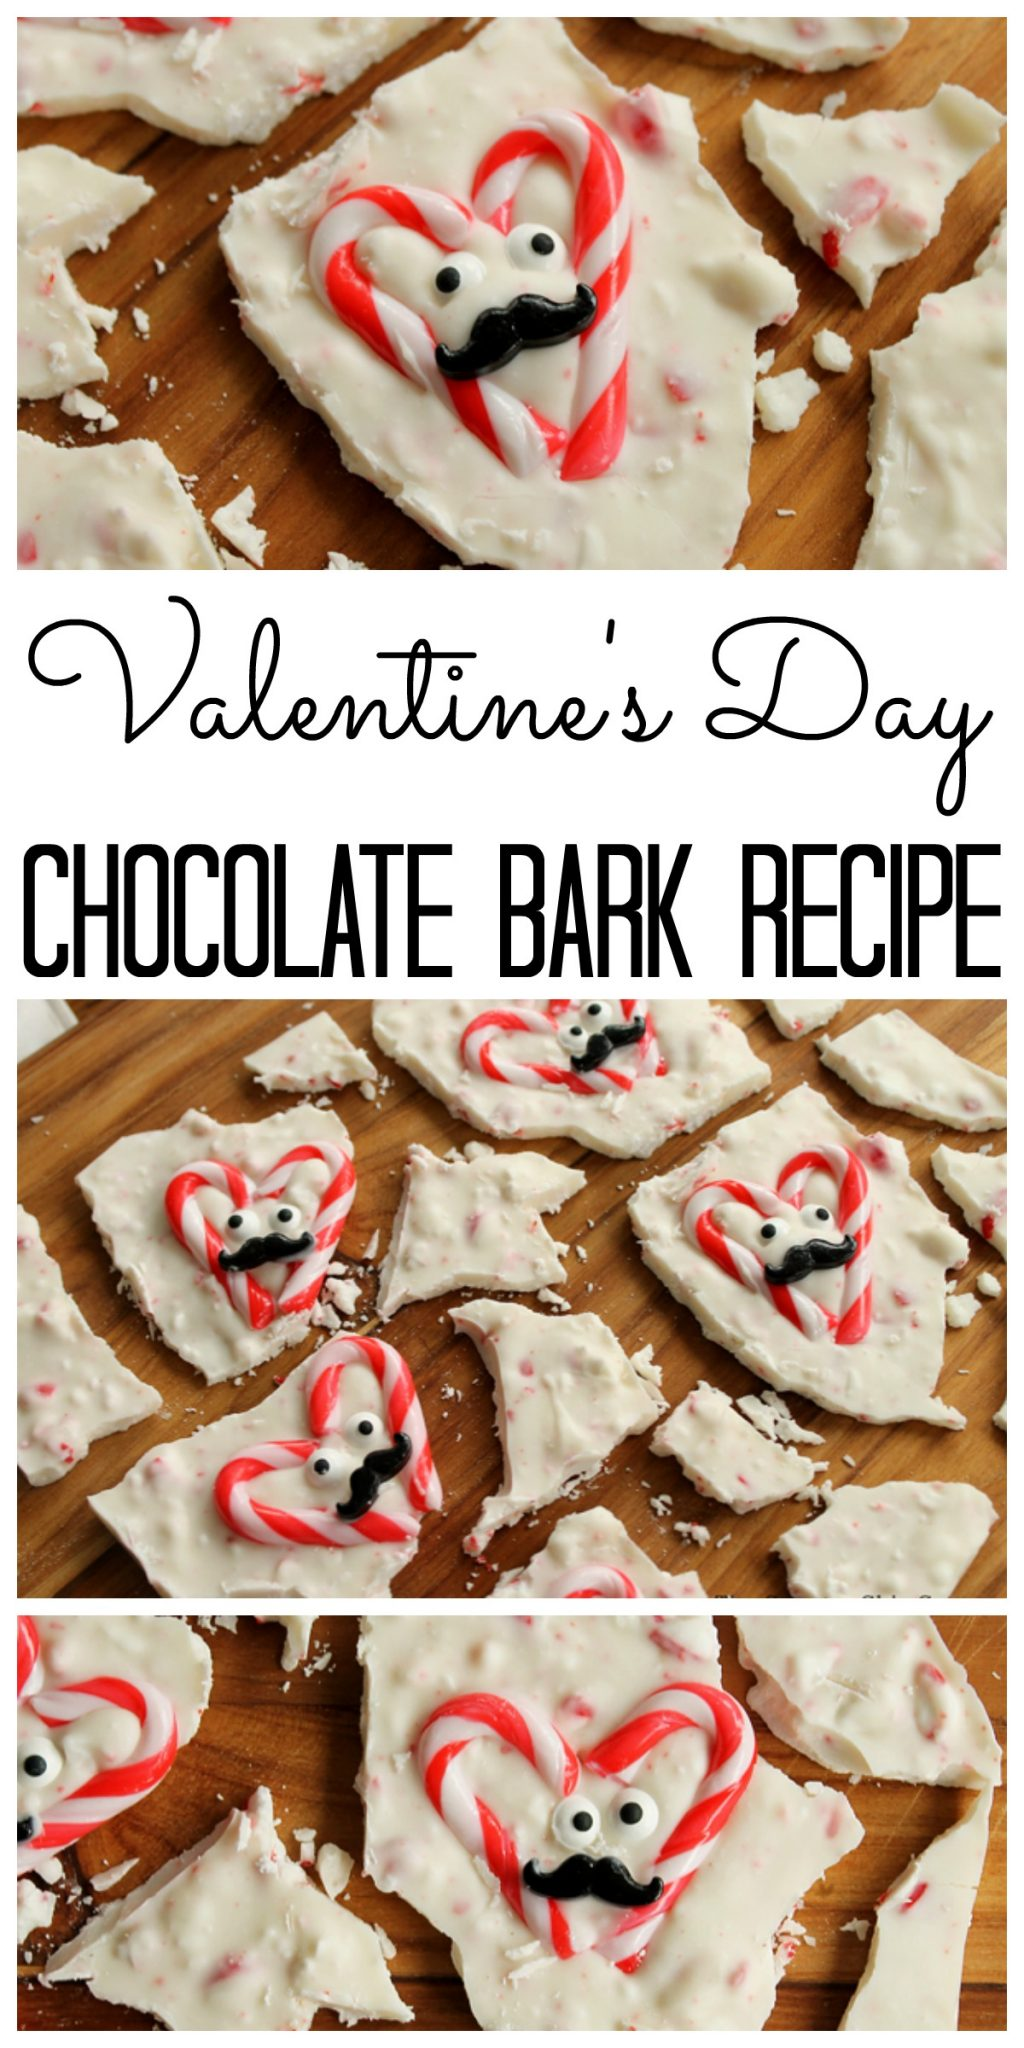 Valentine's Day Chocolate Bark by The Country Chic Cottage